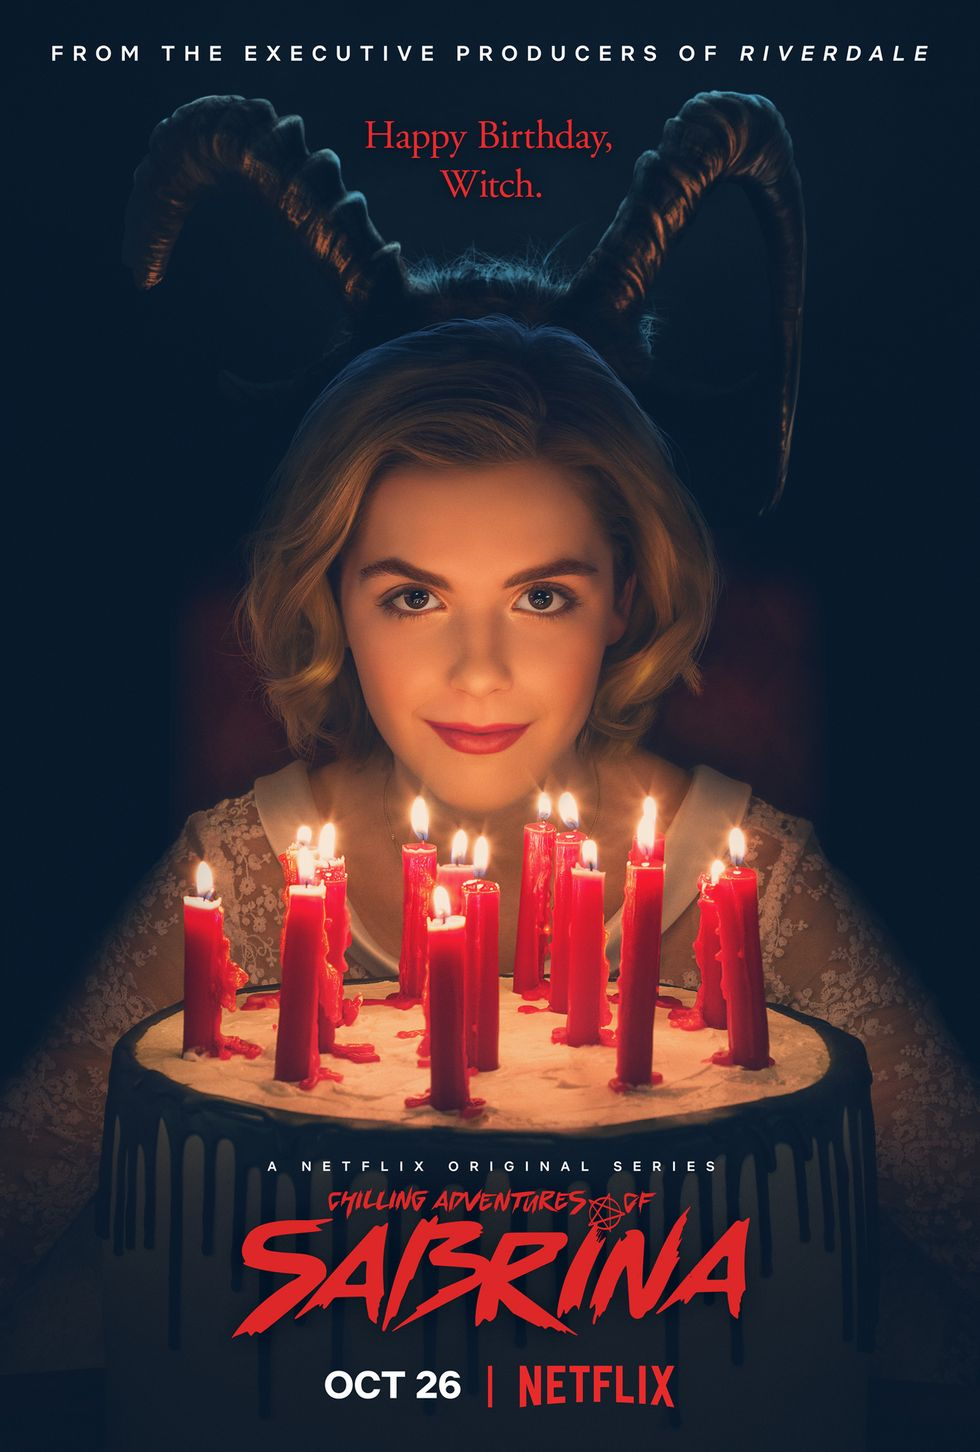 Add 'The Chilling Adventures Of Sabrina' To Your Watchlist Right Now